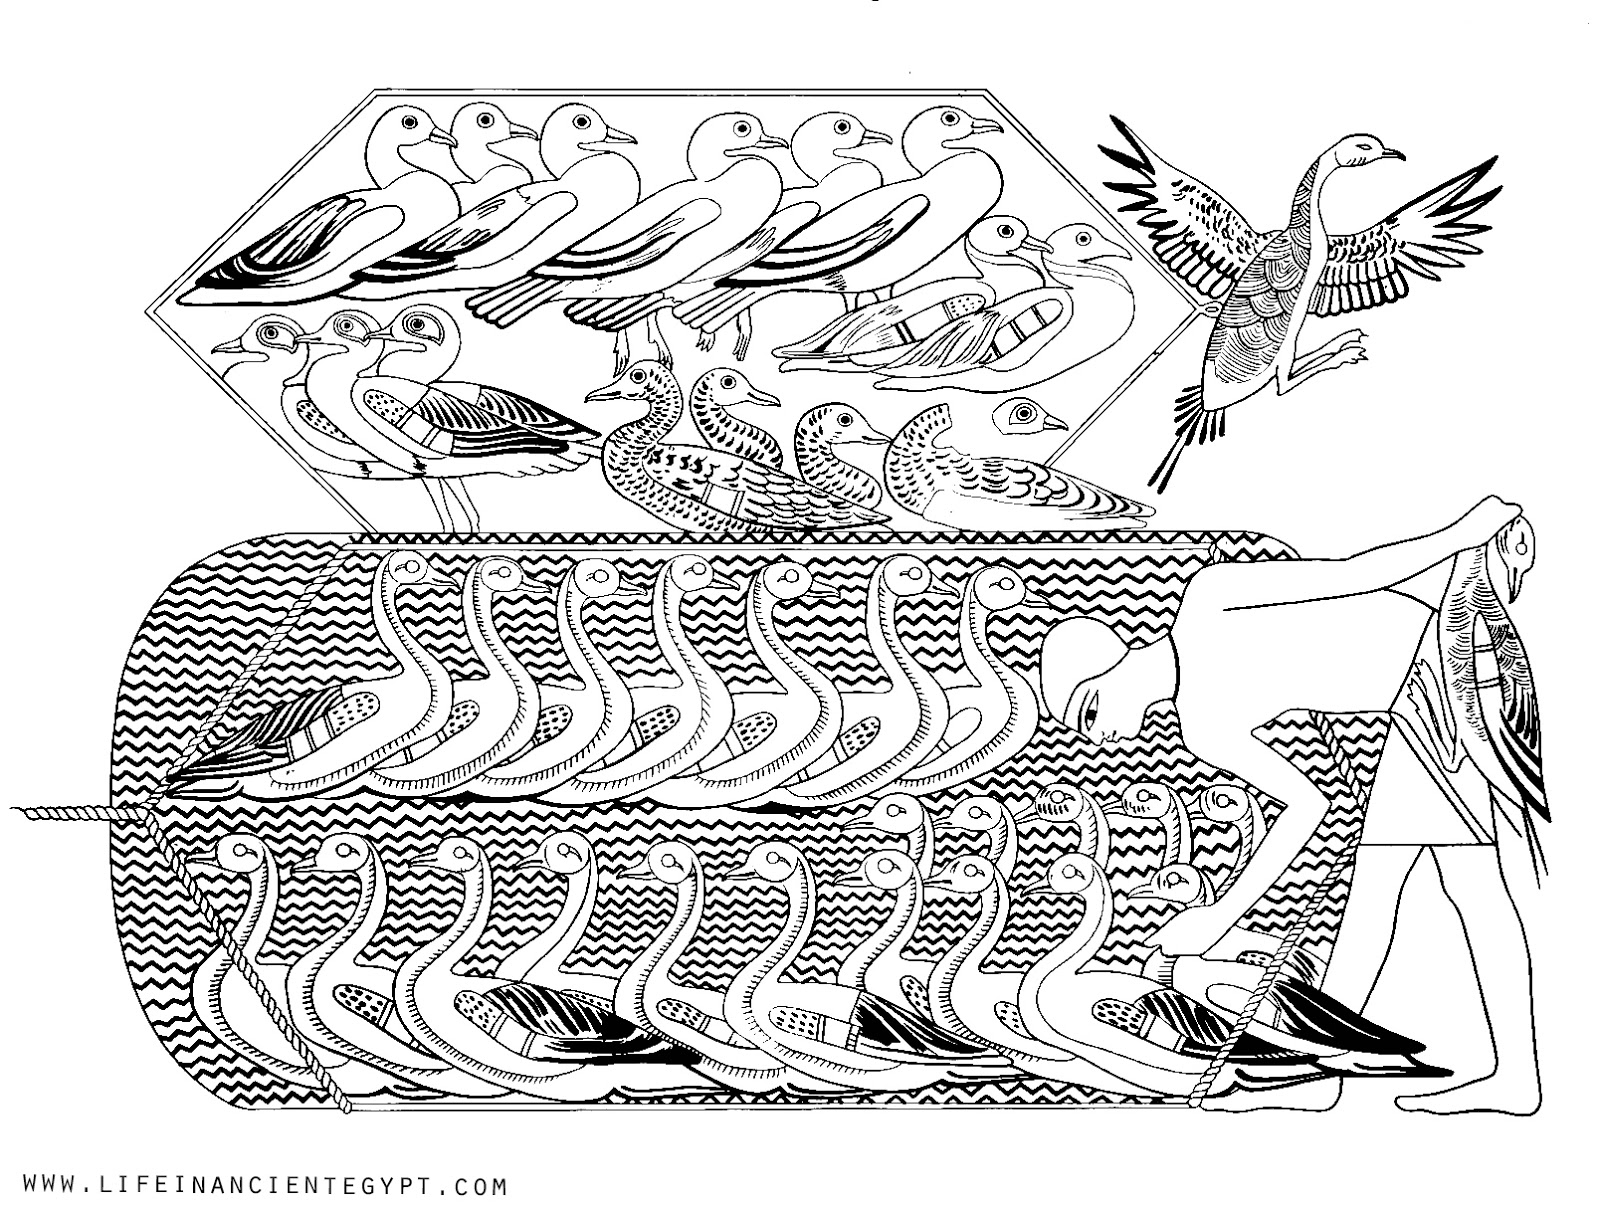 Top 10 Ancient Egypt Coloring Pages For Toddlers | 1214x1600